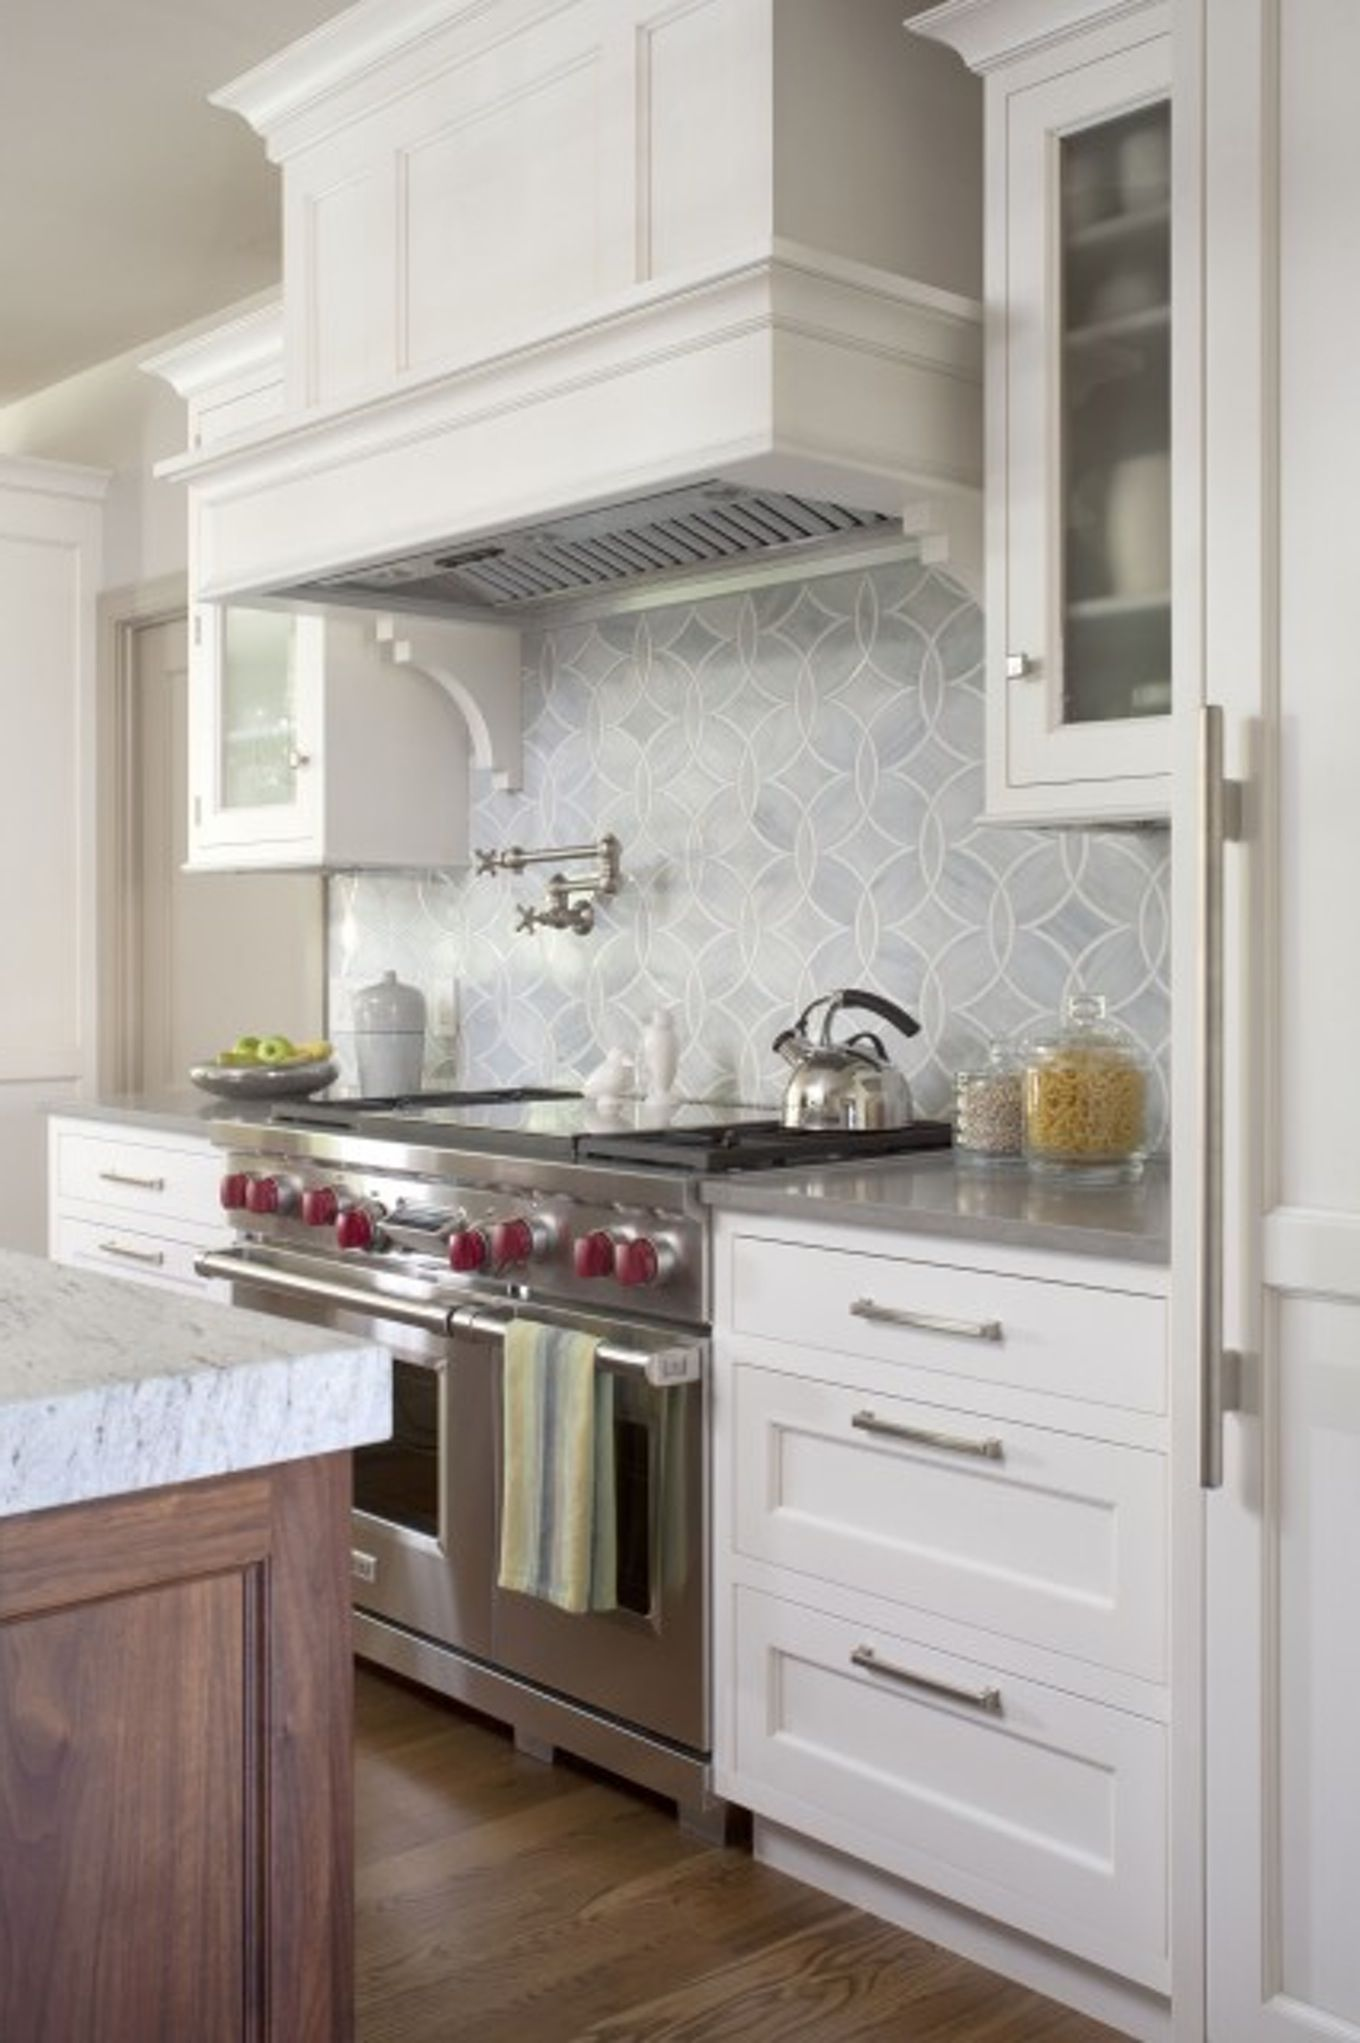 Backsplash Lowes Canada. Backsplash Subway Tile Home Depot ...